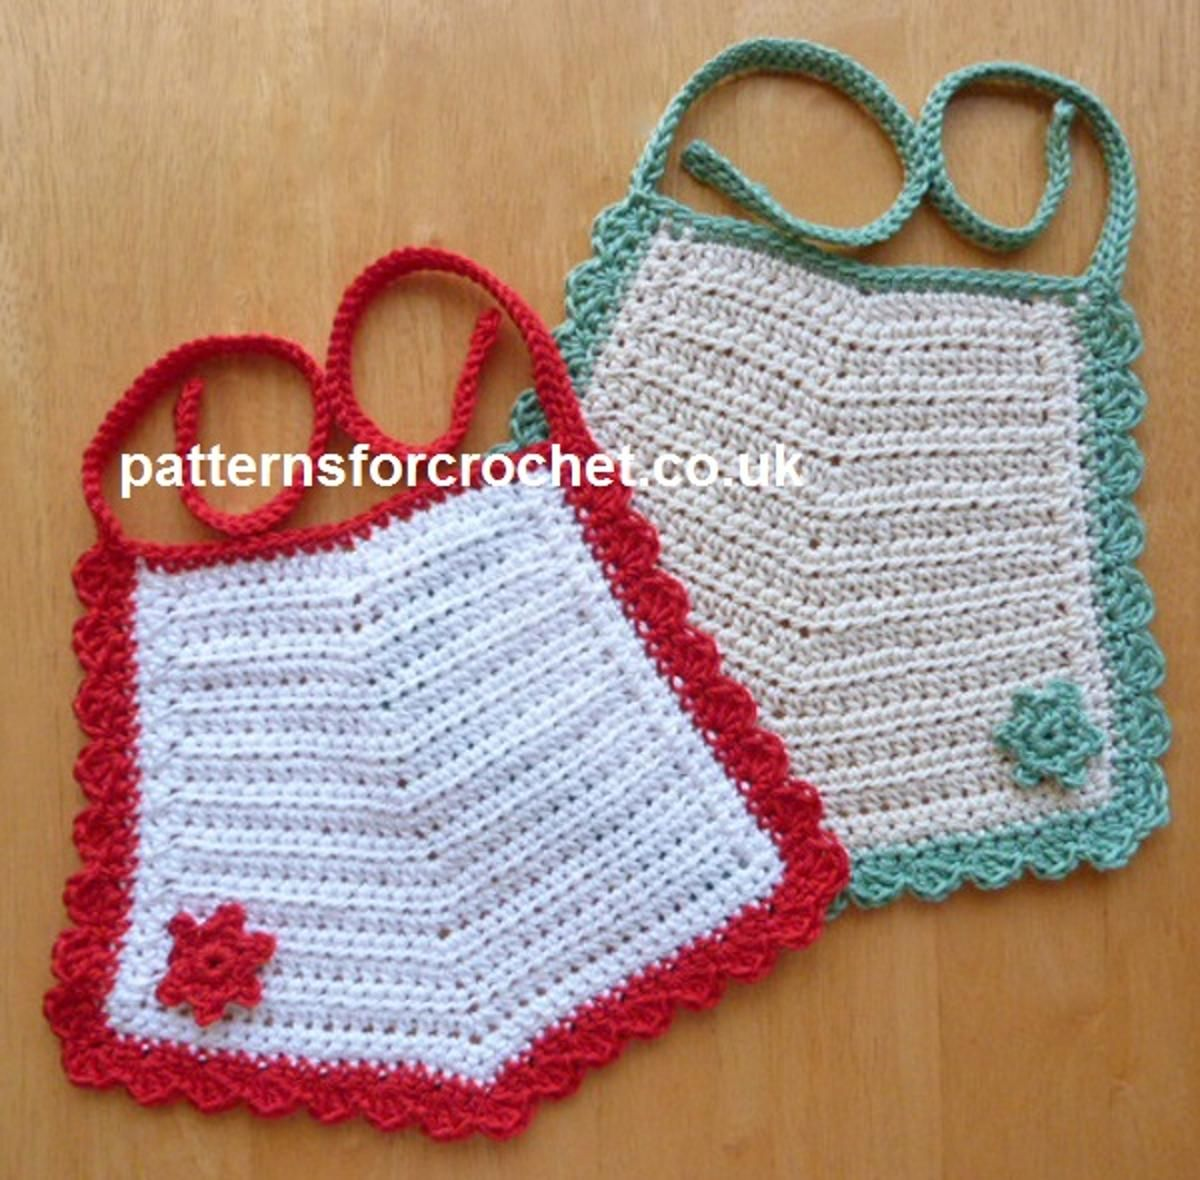 Pfc250 pointed bib baby crochet pattern craftsy crochet pfc250 pointed bib baby crochet pattern craftsy bankloansurffo Image collections